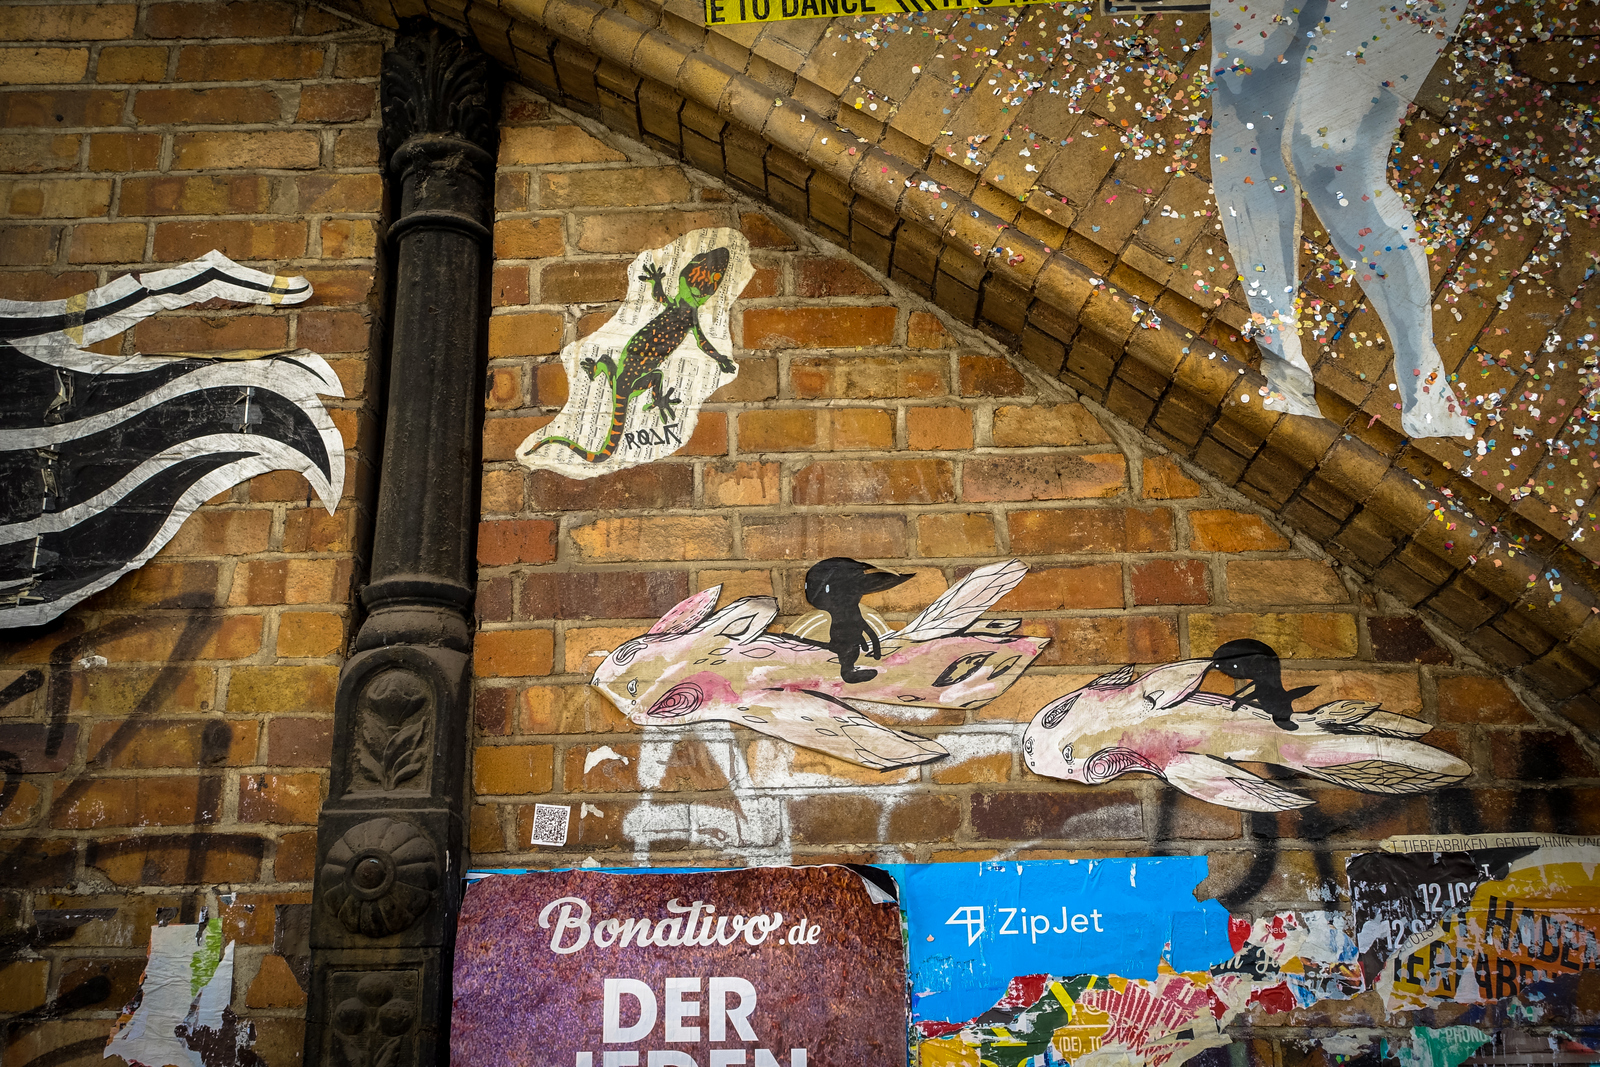 paste up @ dircksenstrasse, berlin – aug 2015